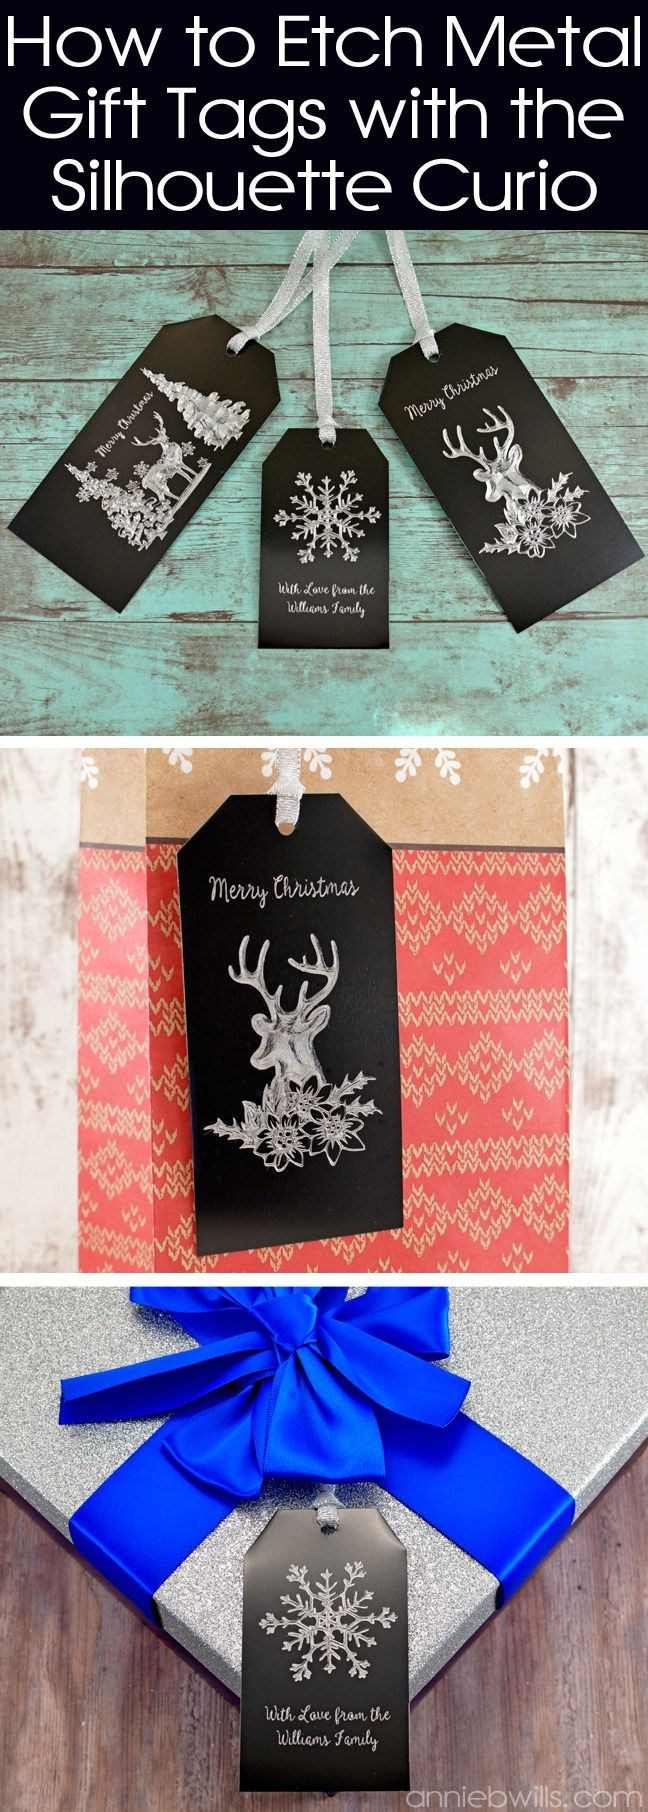 Metal Etched Gift Tags with the Silhouette Curio